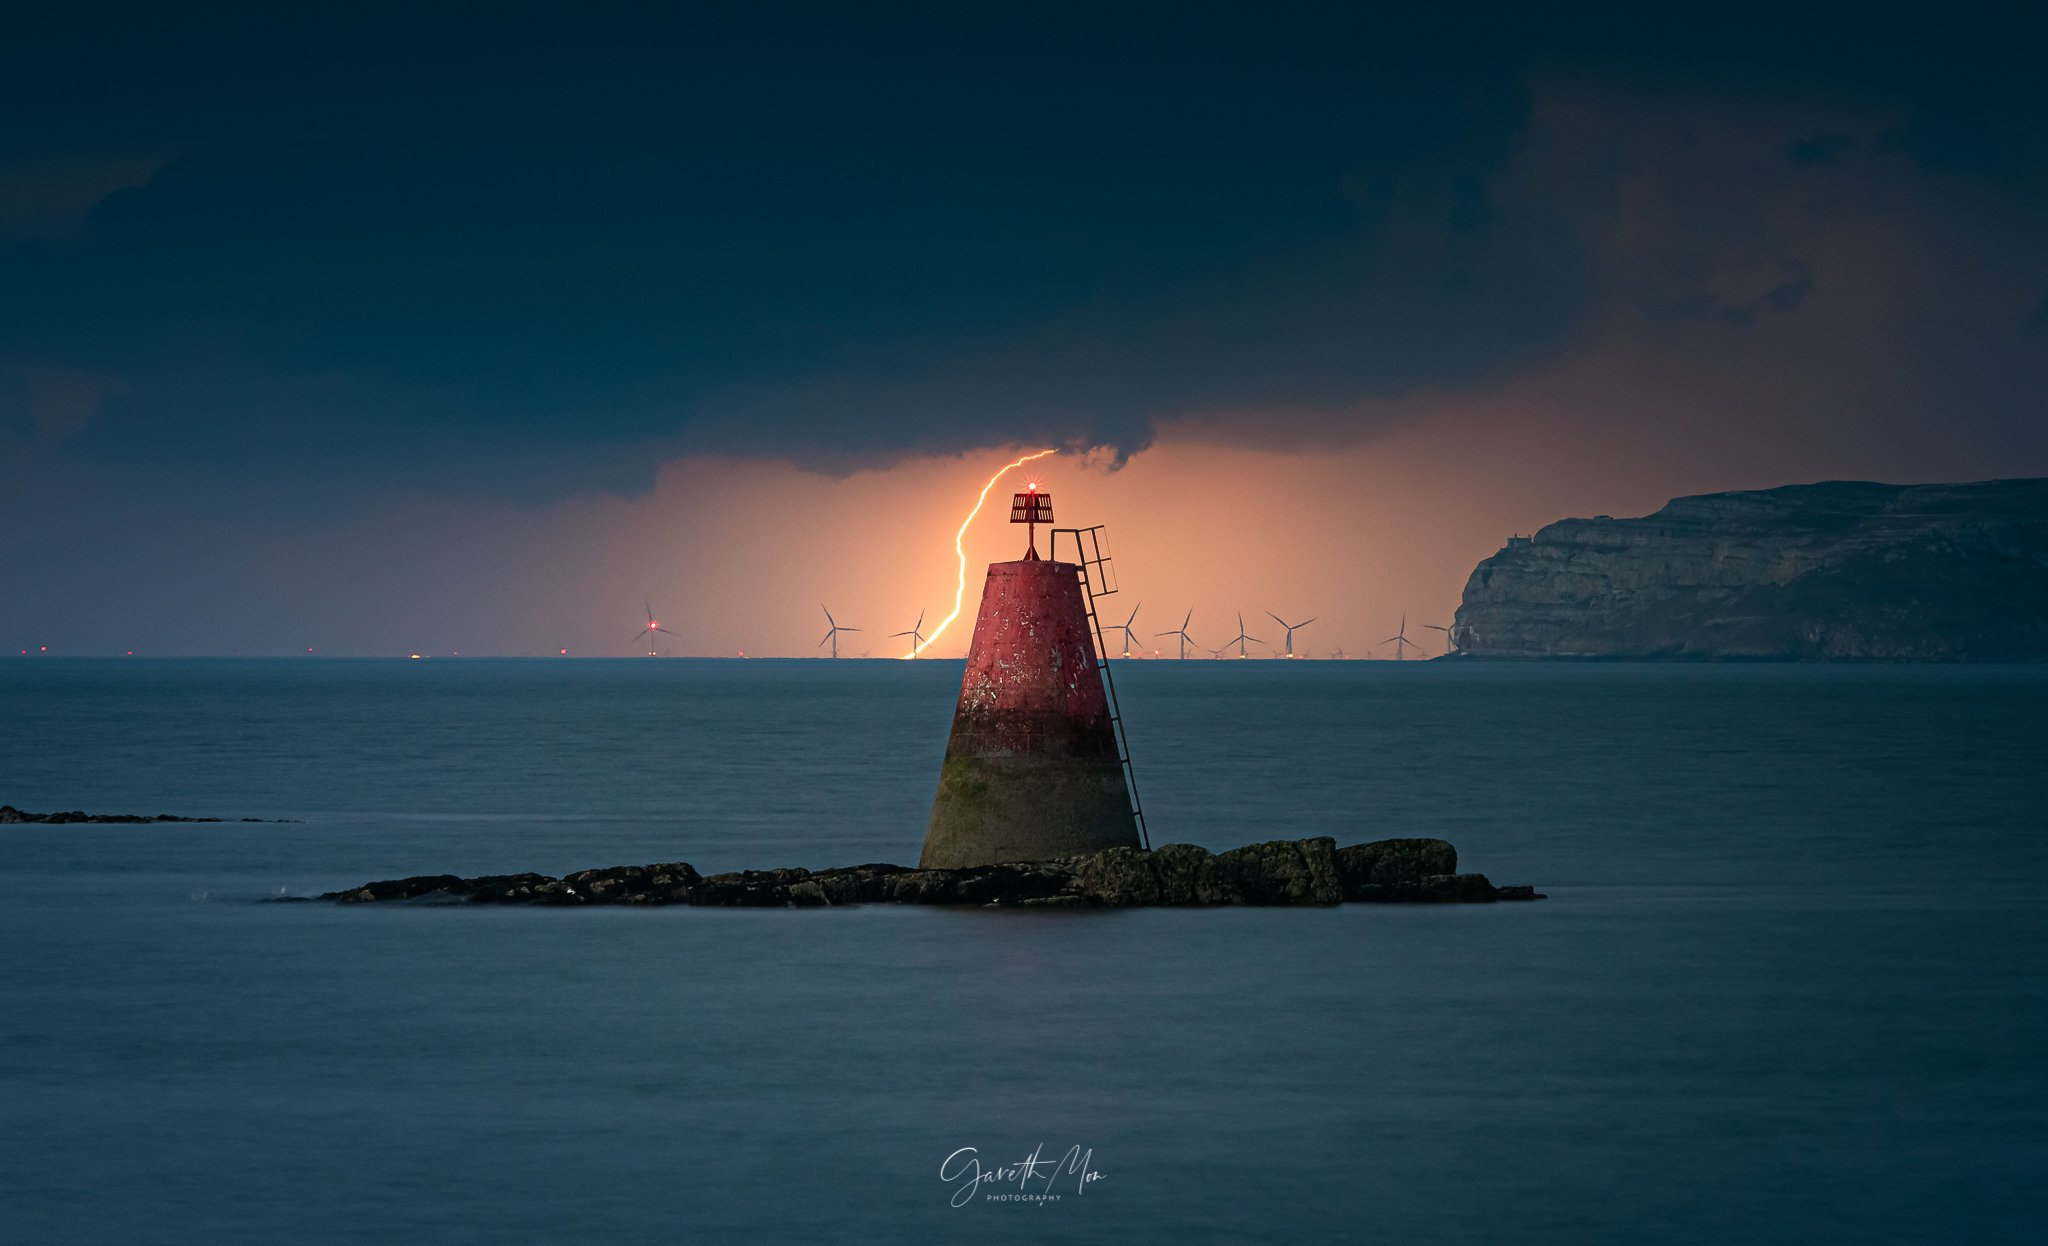 Lighthouse Gareth Mon Photography